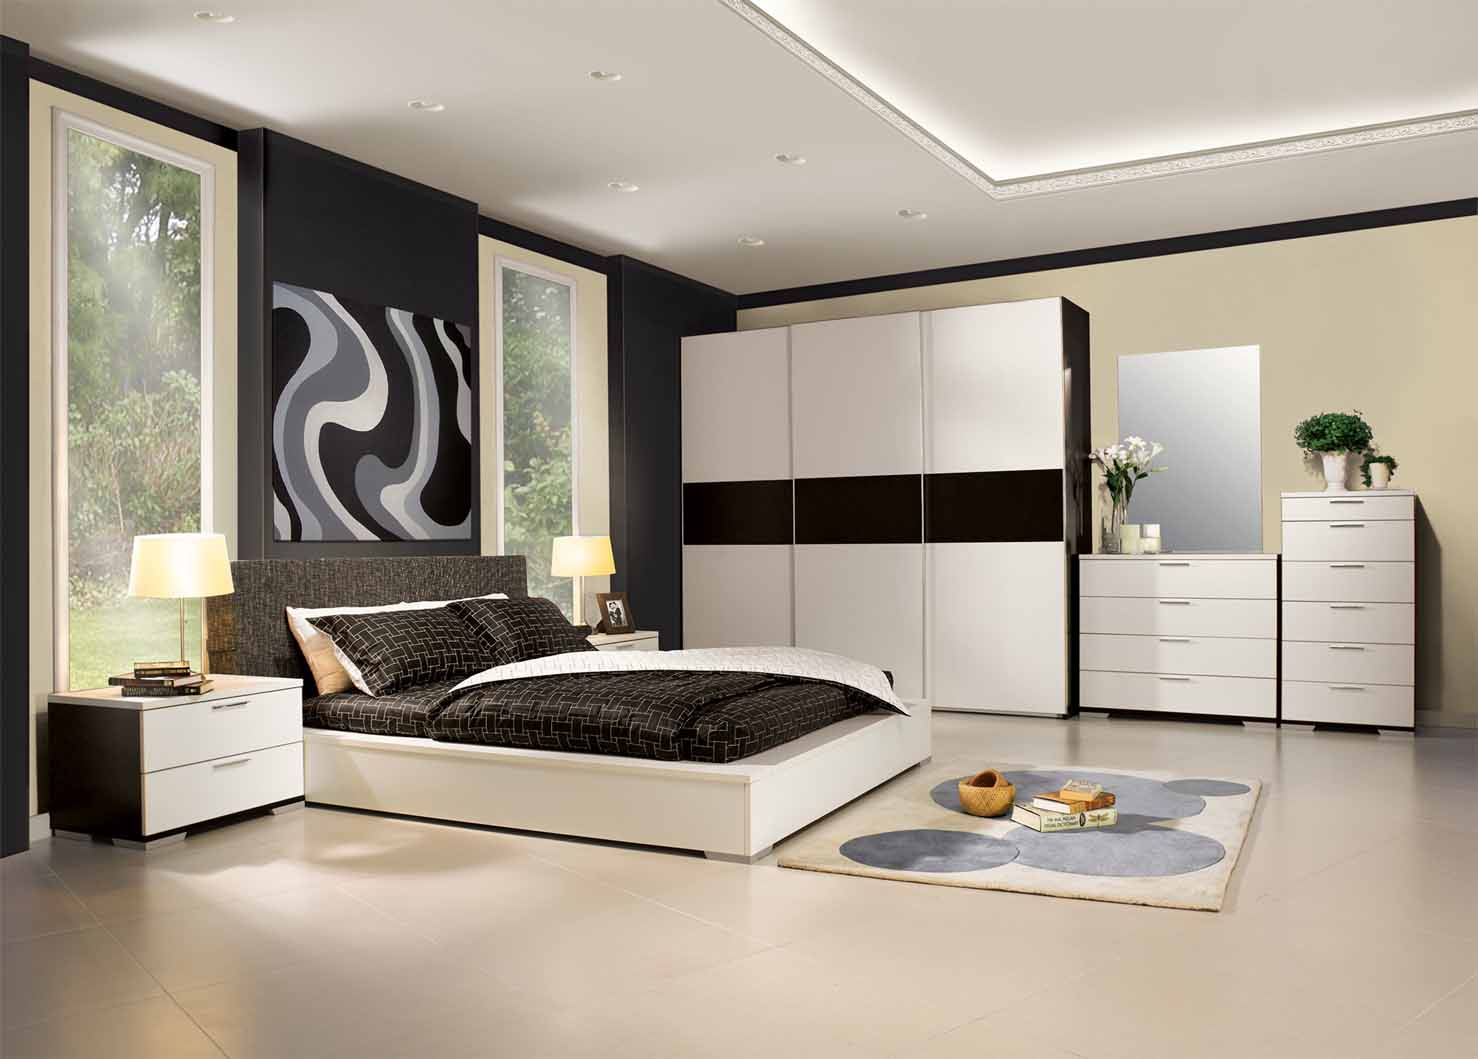 Modern black bedroom furniture popular interior house ideas for Black modern decor